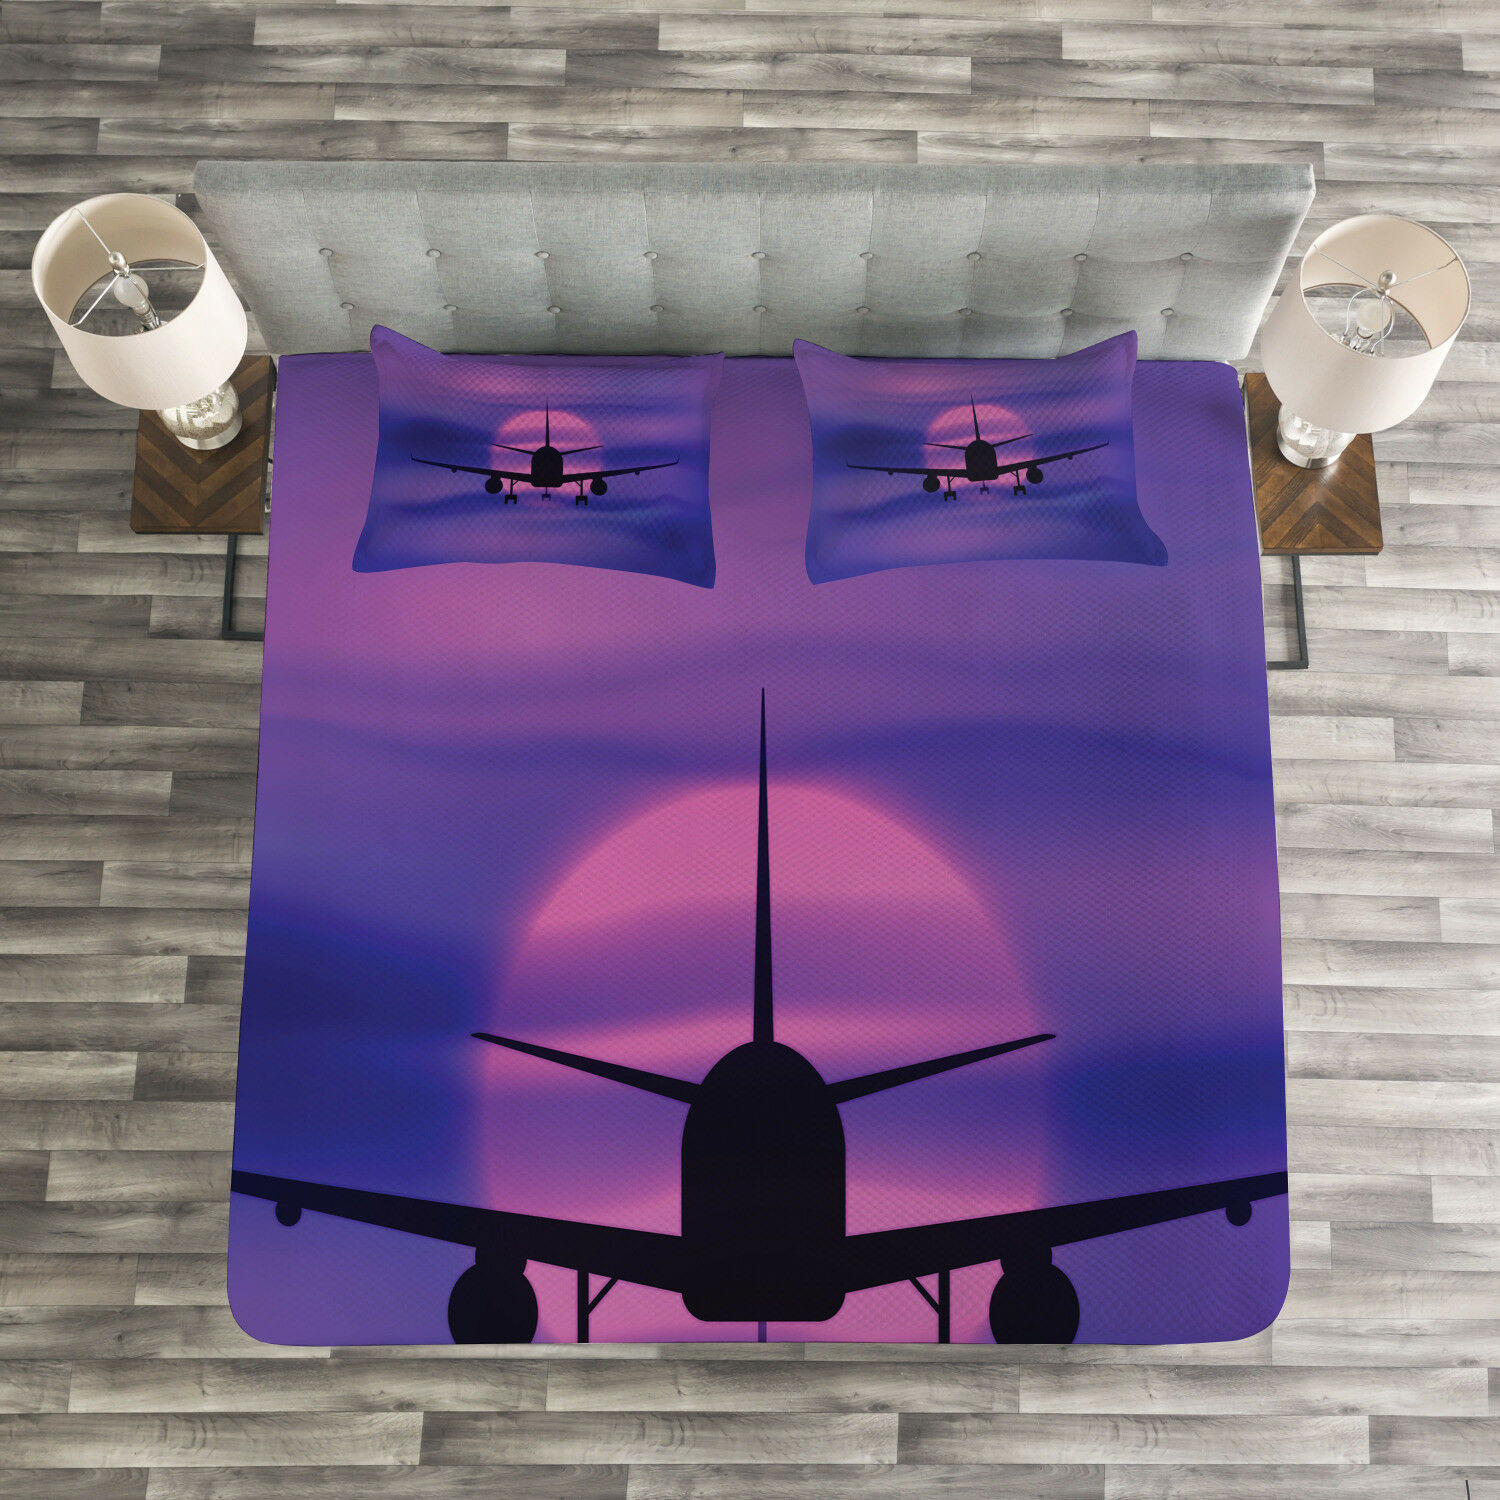 Flugzeug Quilted Bedspread & Pillow Shams Set, Dreamy Sky Traveling Print